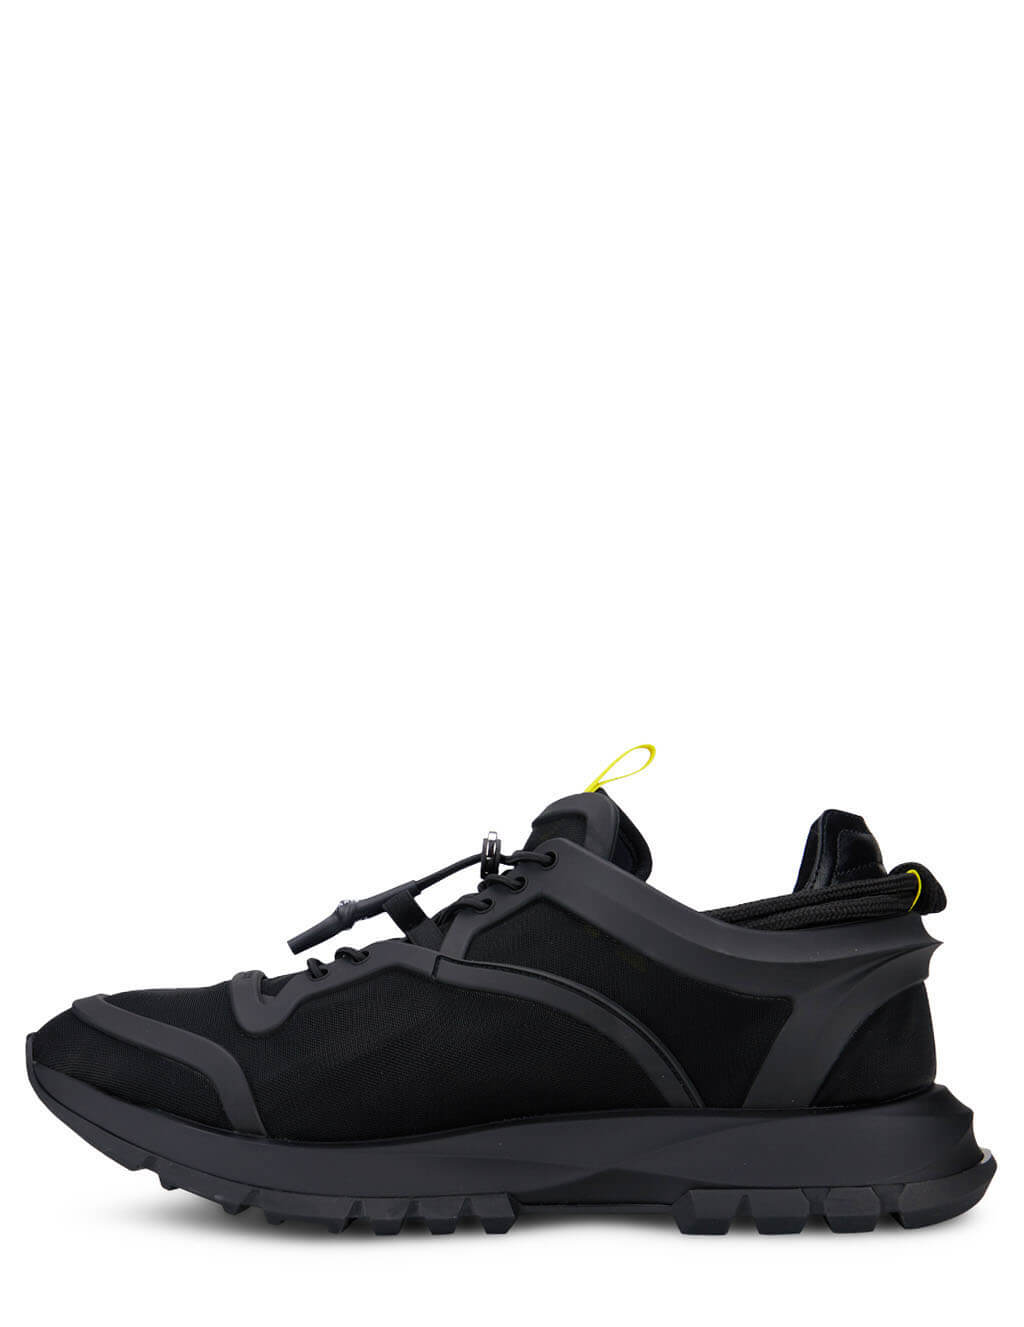 Men's Black Givenchy Spectre Runner Cage Sneakers BH003EH0PY-001